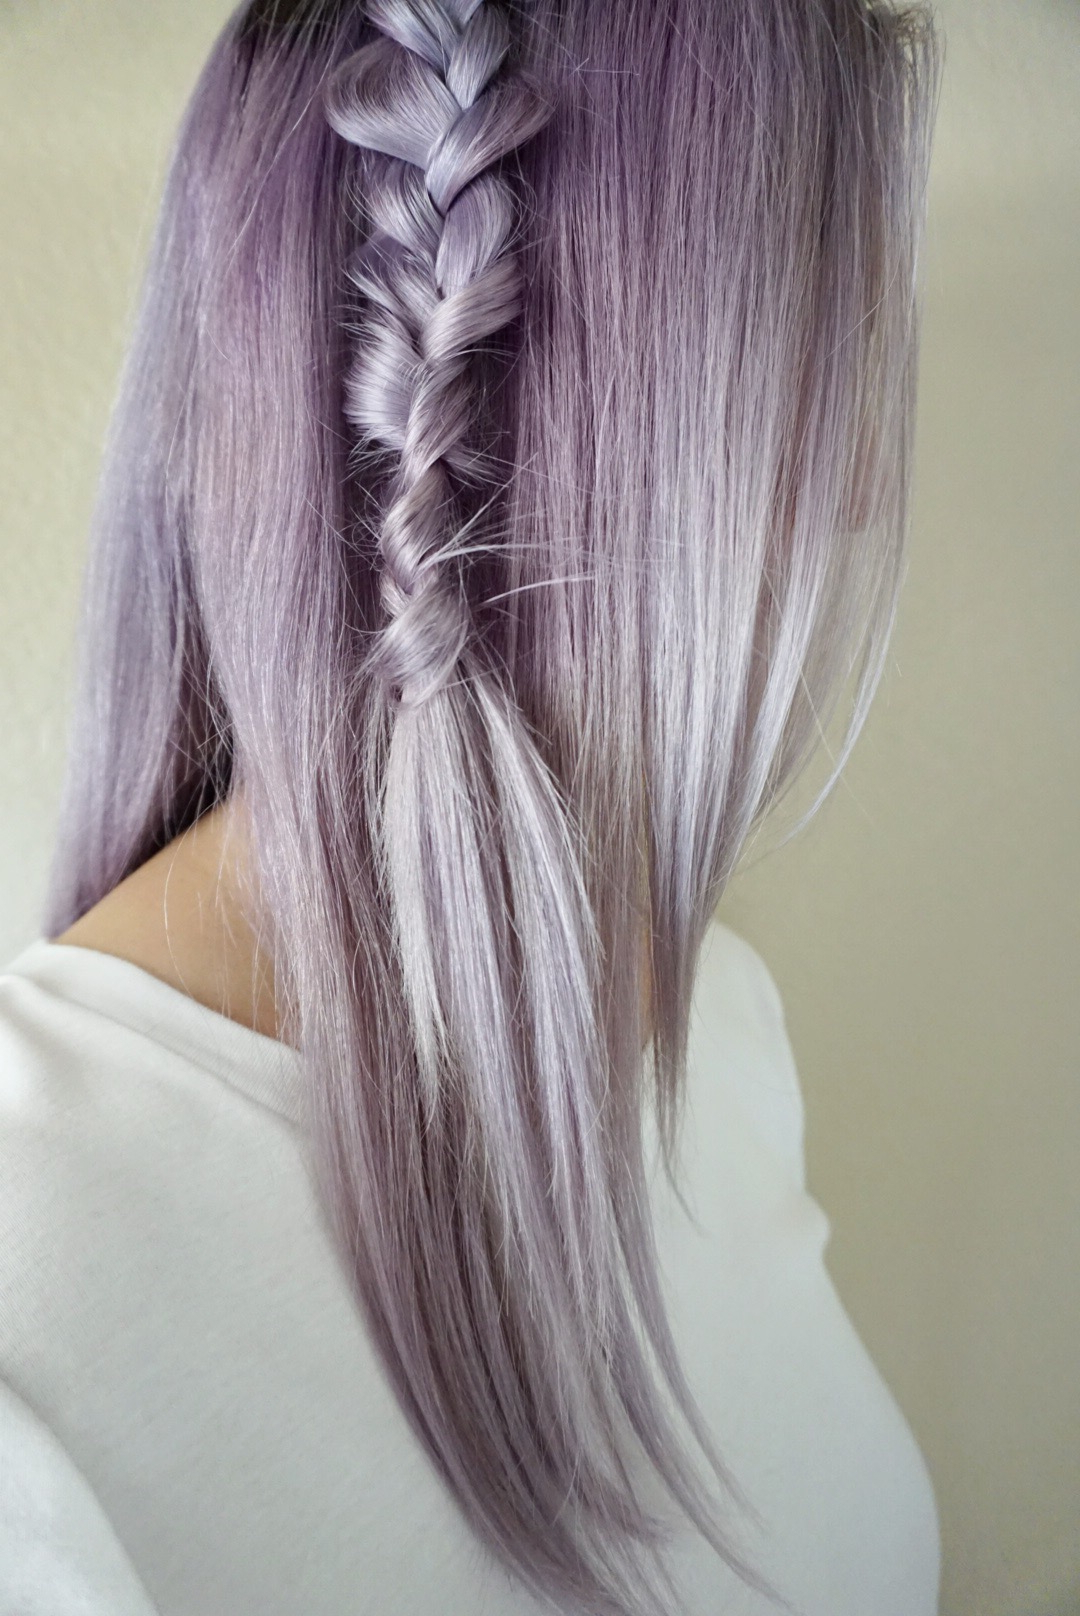 Cute Girls Hairstyles (View 20 of 20)